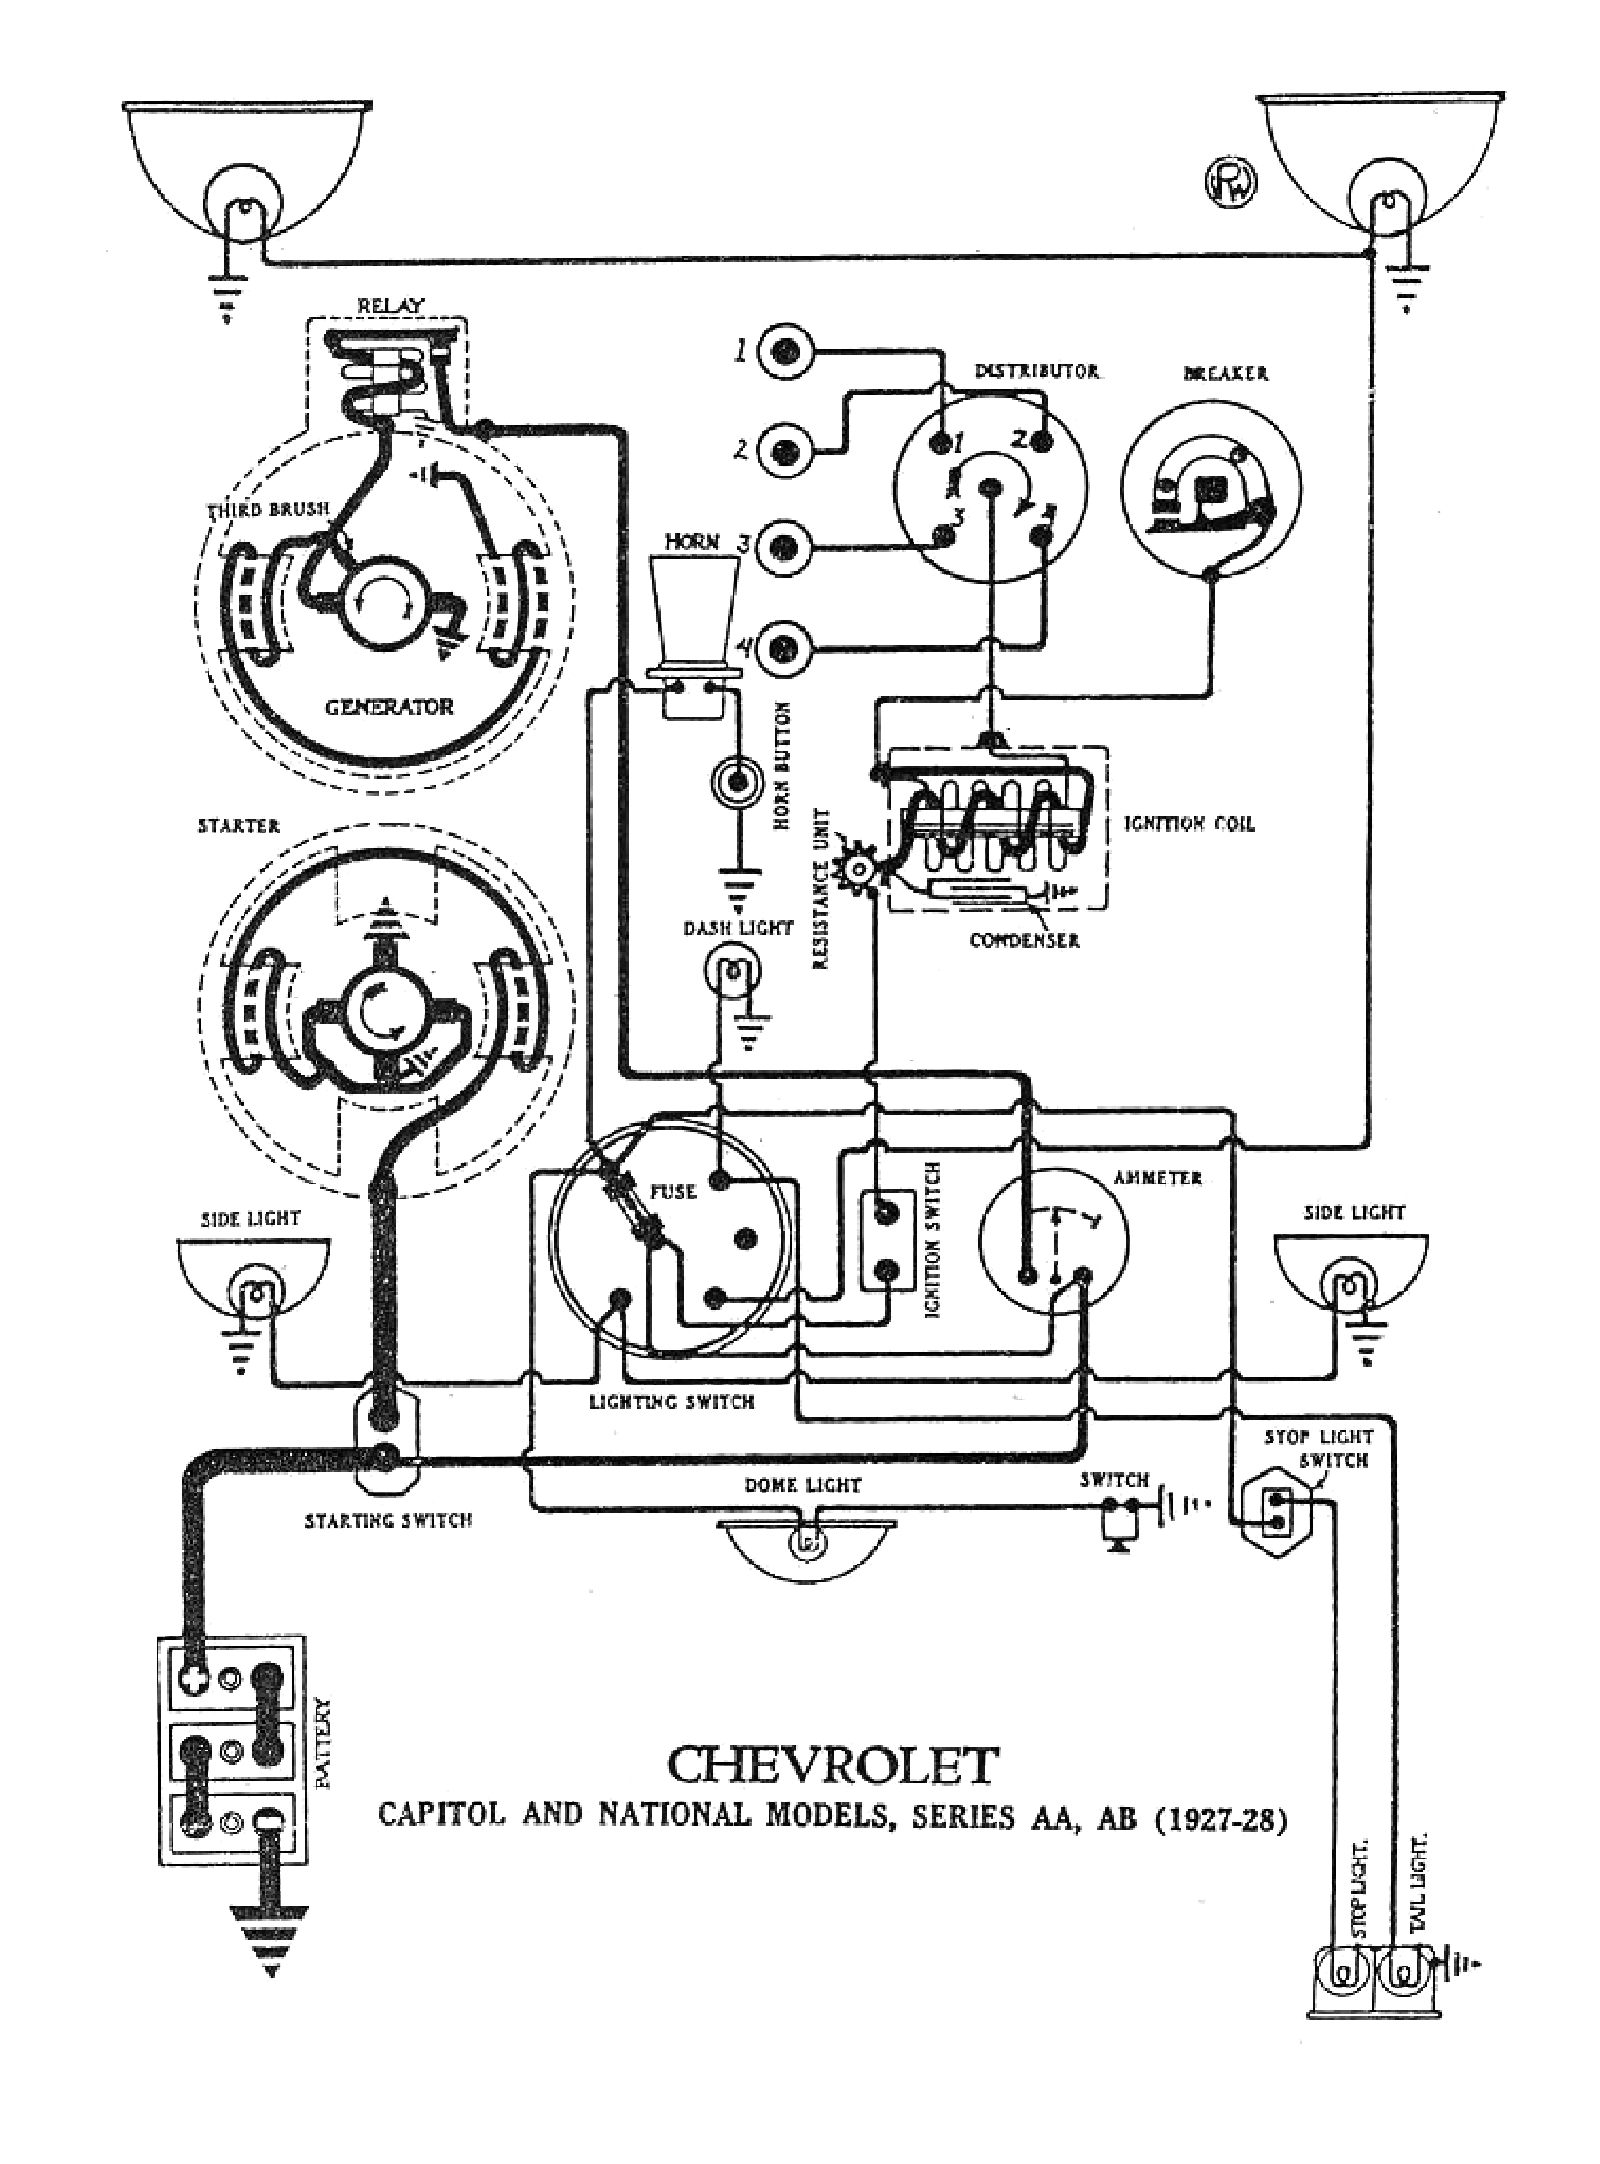 chevy wiring diagramsChevy Styleline Deluxe 2 Door On 1956 Ford Generator Wiring Diagram #4